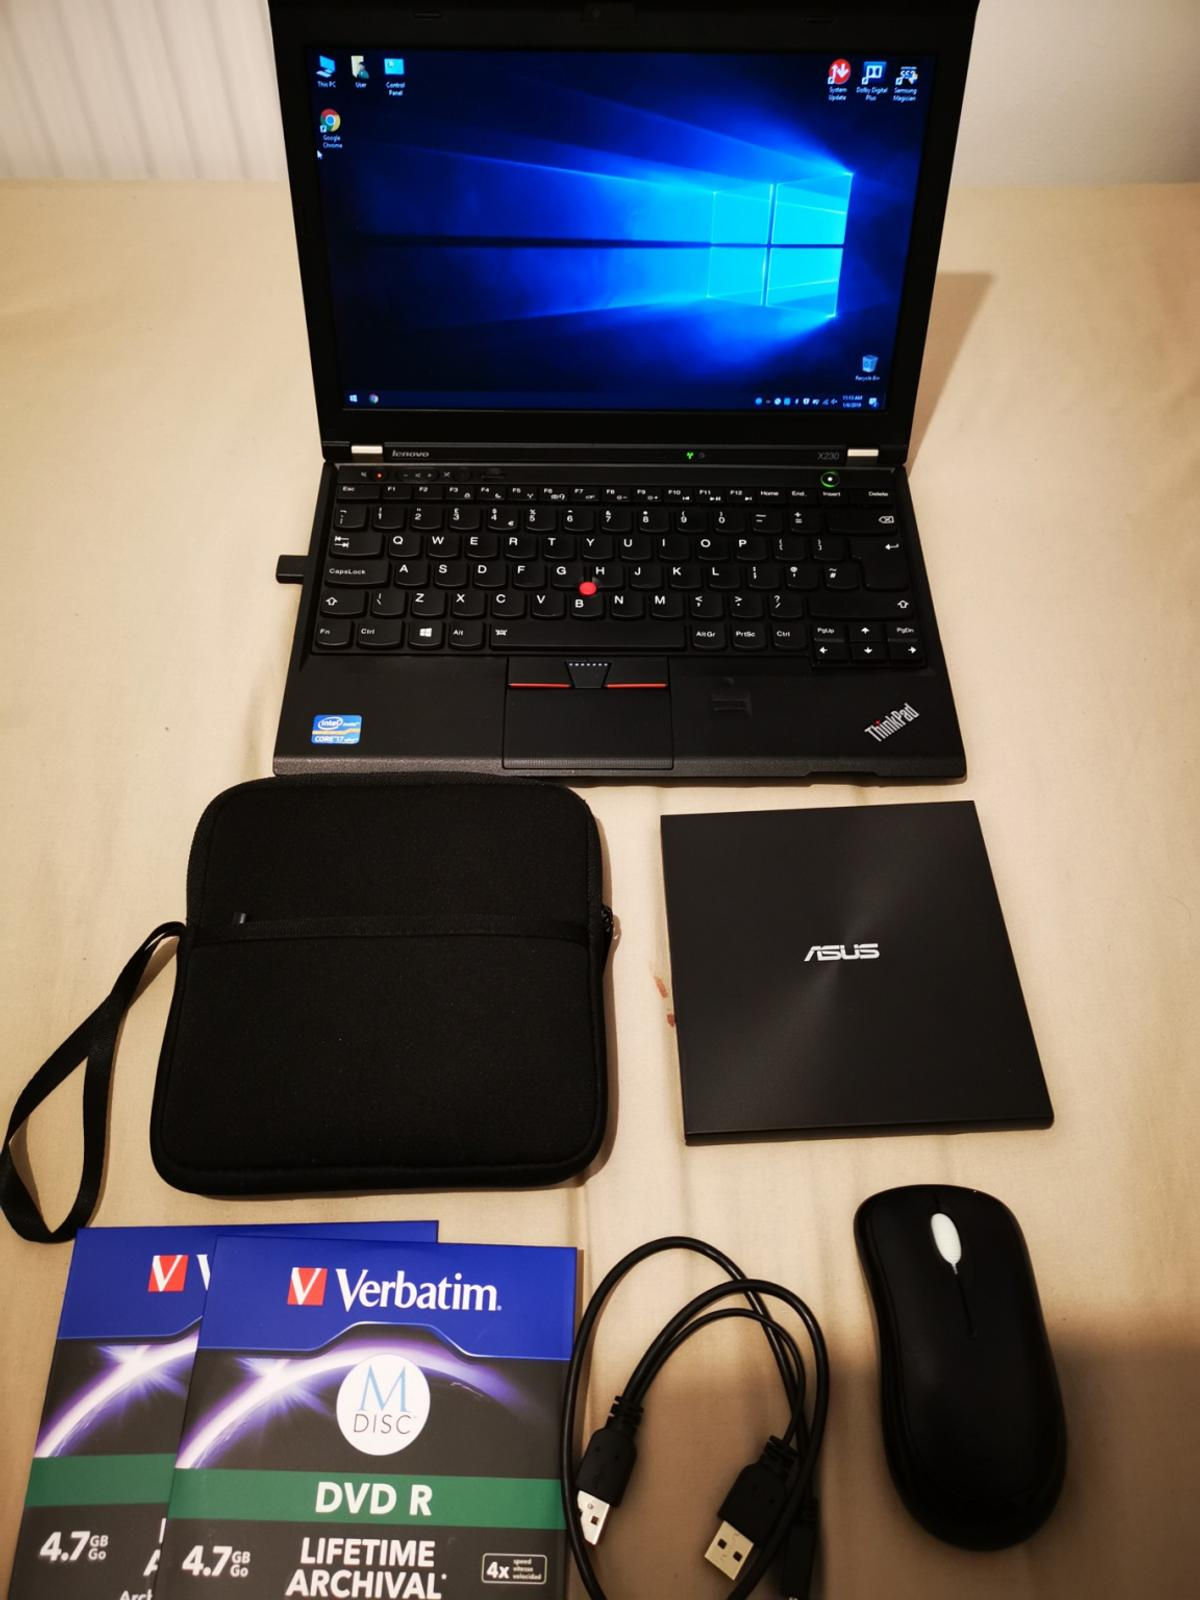 Lenovo ThinkPad X230 I7 4GB SSD laptop in RM3 London for